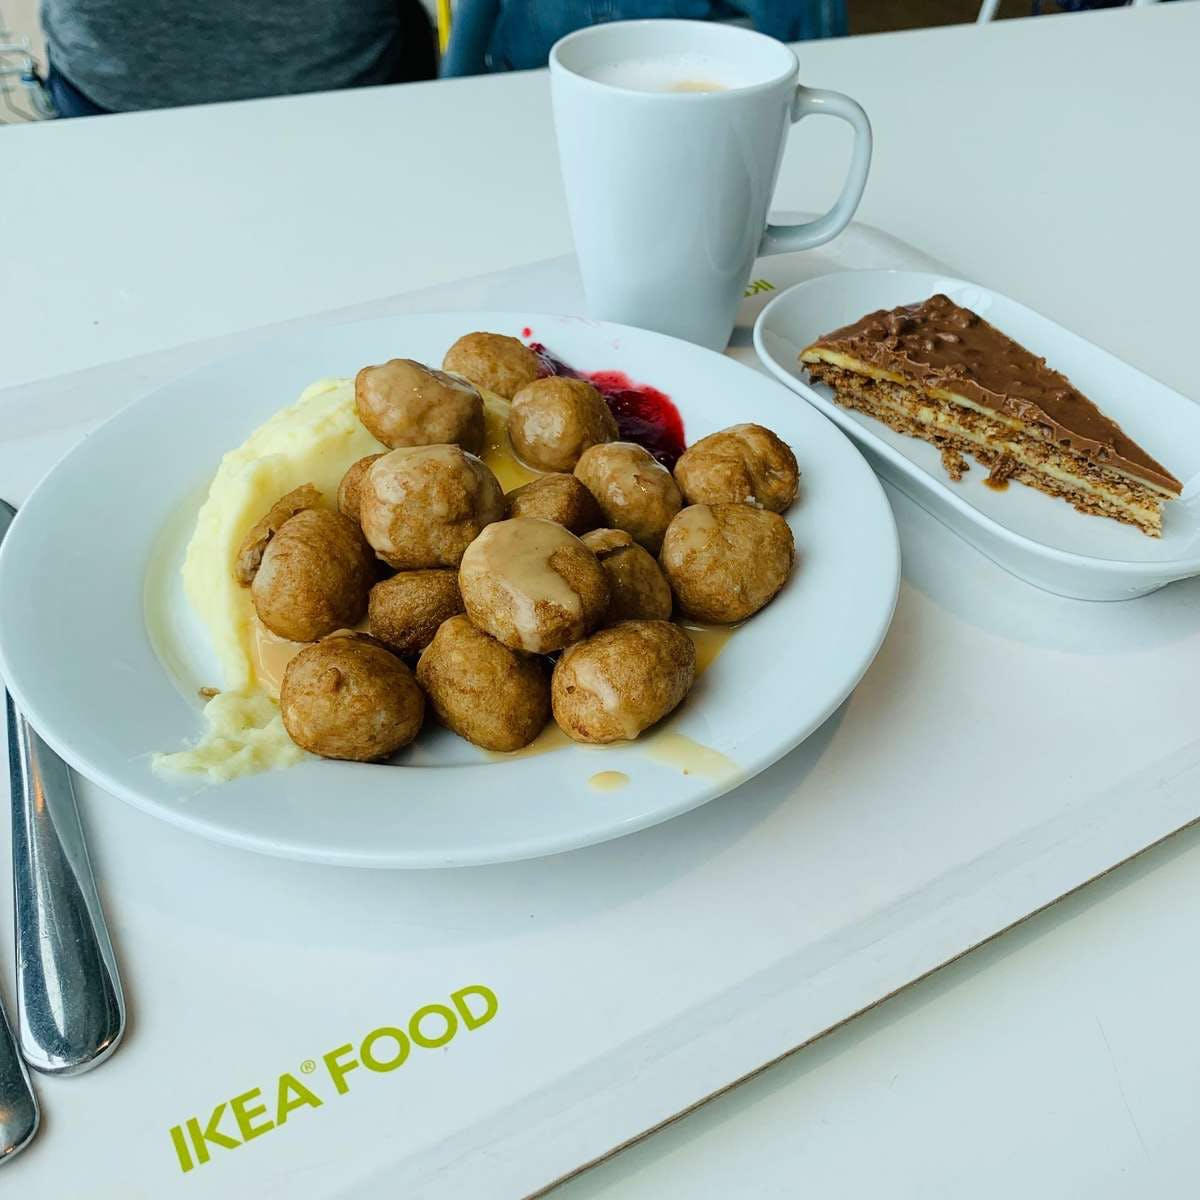 IKEA Restaurant  Caf - Tempe - Accommodation Adelaide